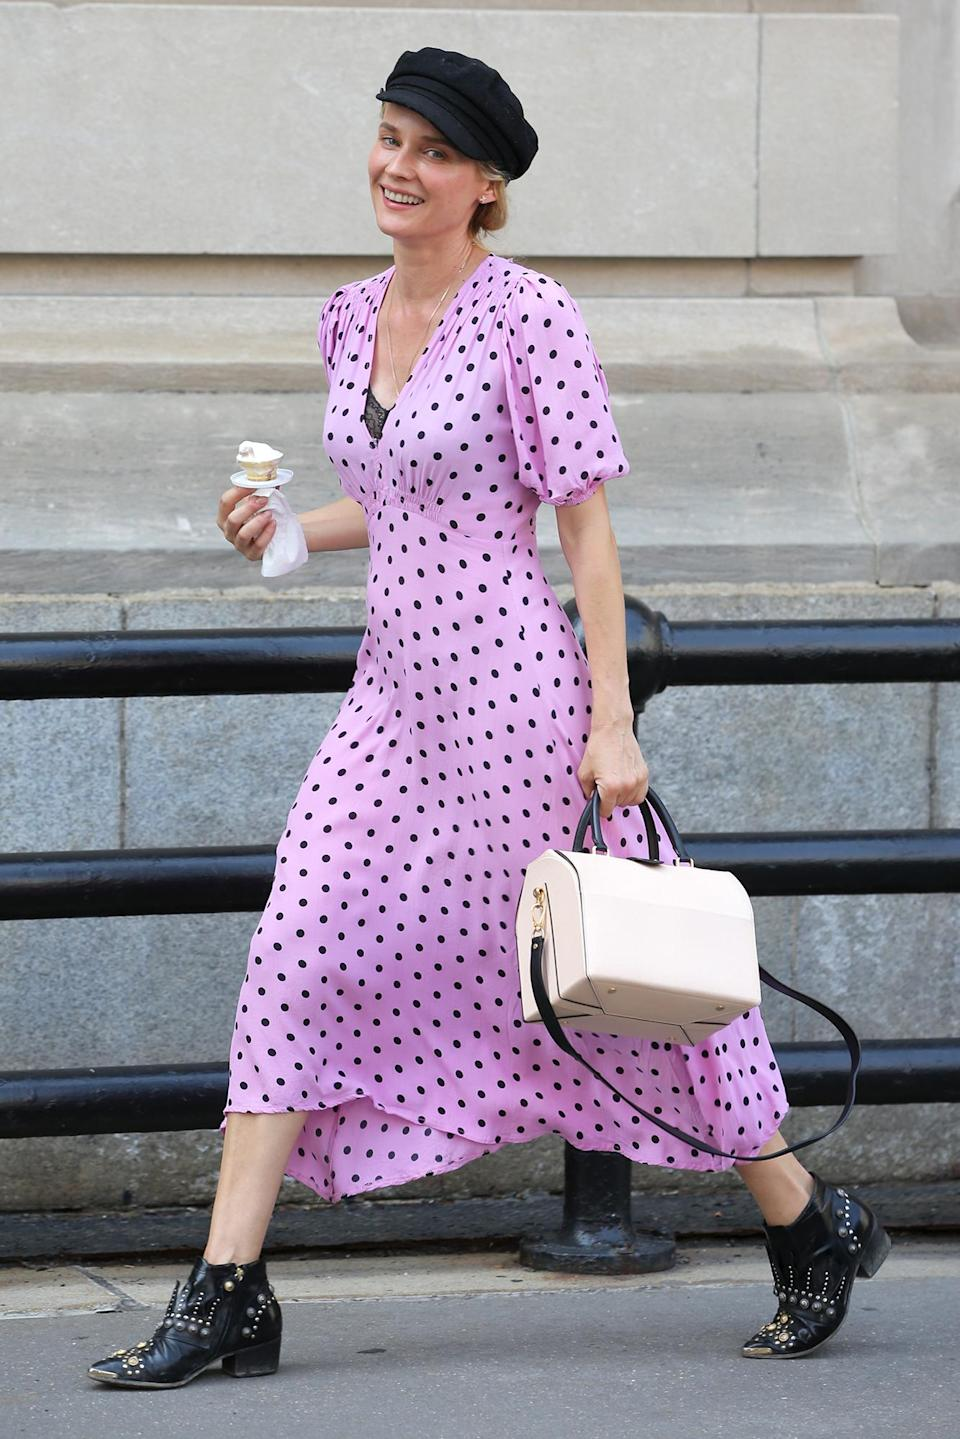 <p>Diane Kruger sports a purple polka dot dress while enjoying some ice cream on a hot day in N.Y.C. on June 21.</p>